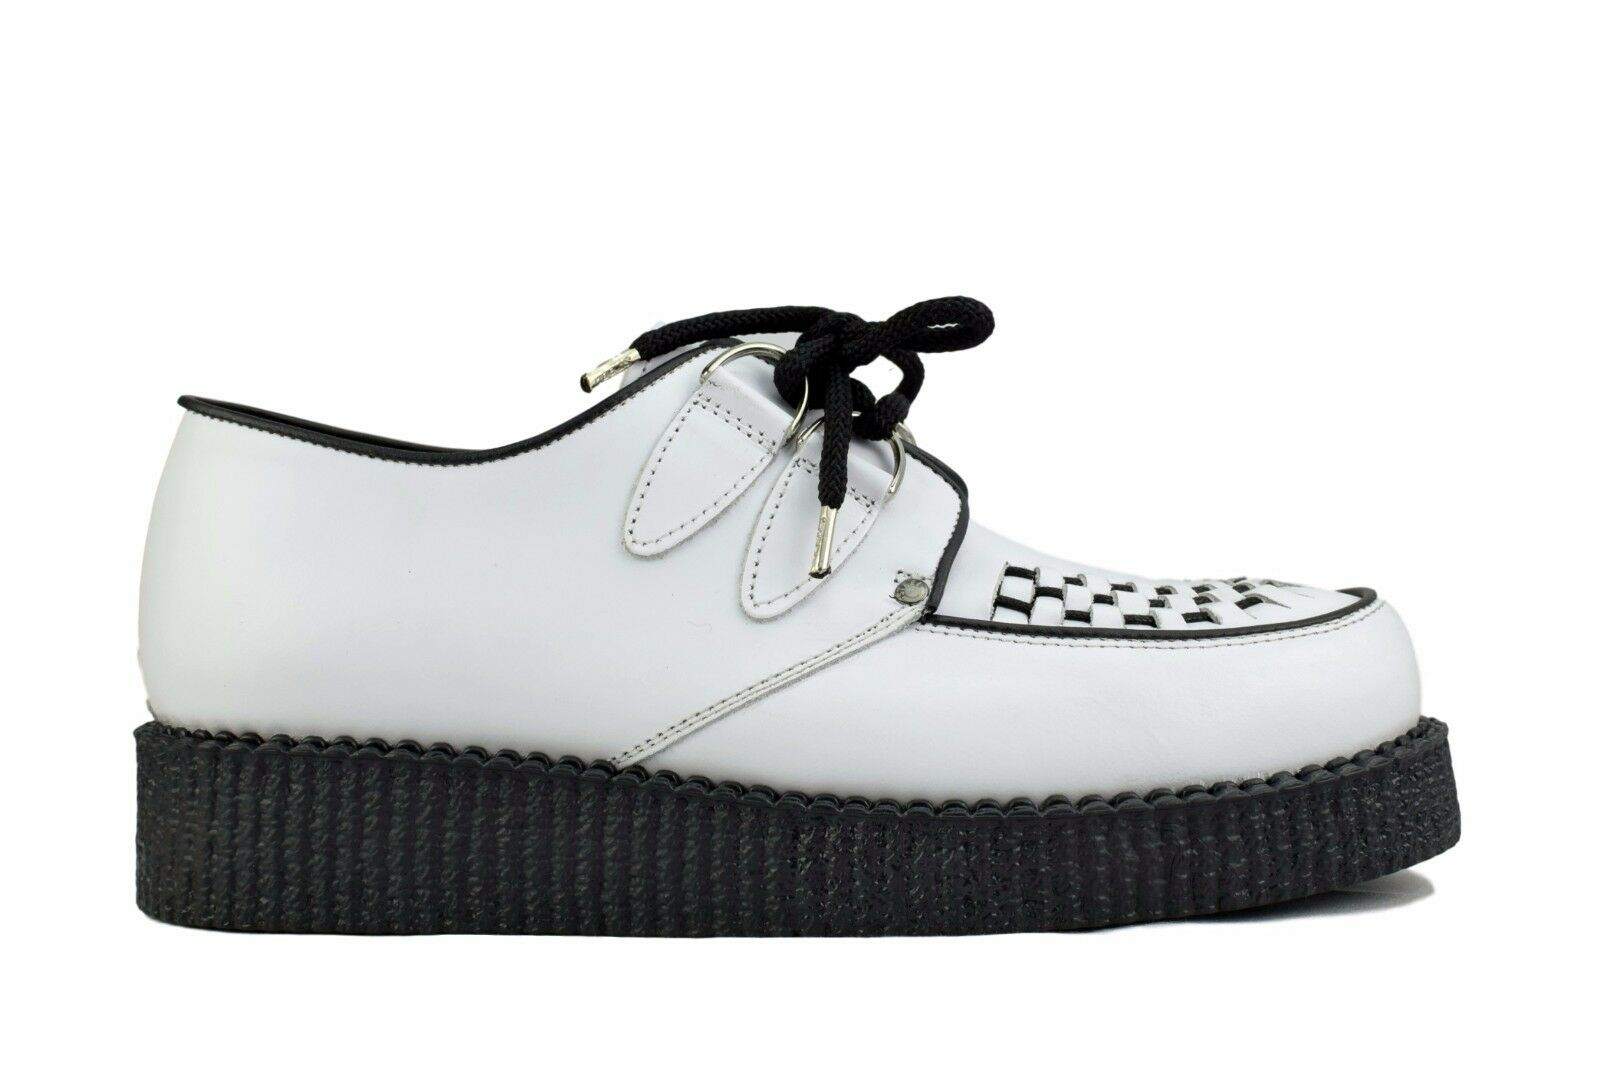 Steel Ground Schuhes WEISS Leder Creepers Low Sole D Ring Casual Sc400Z21